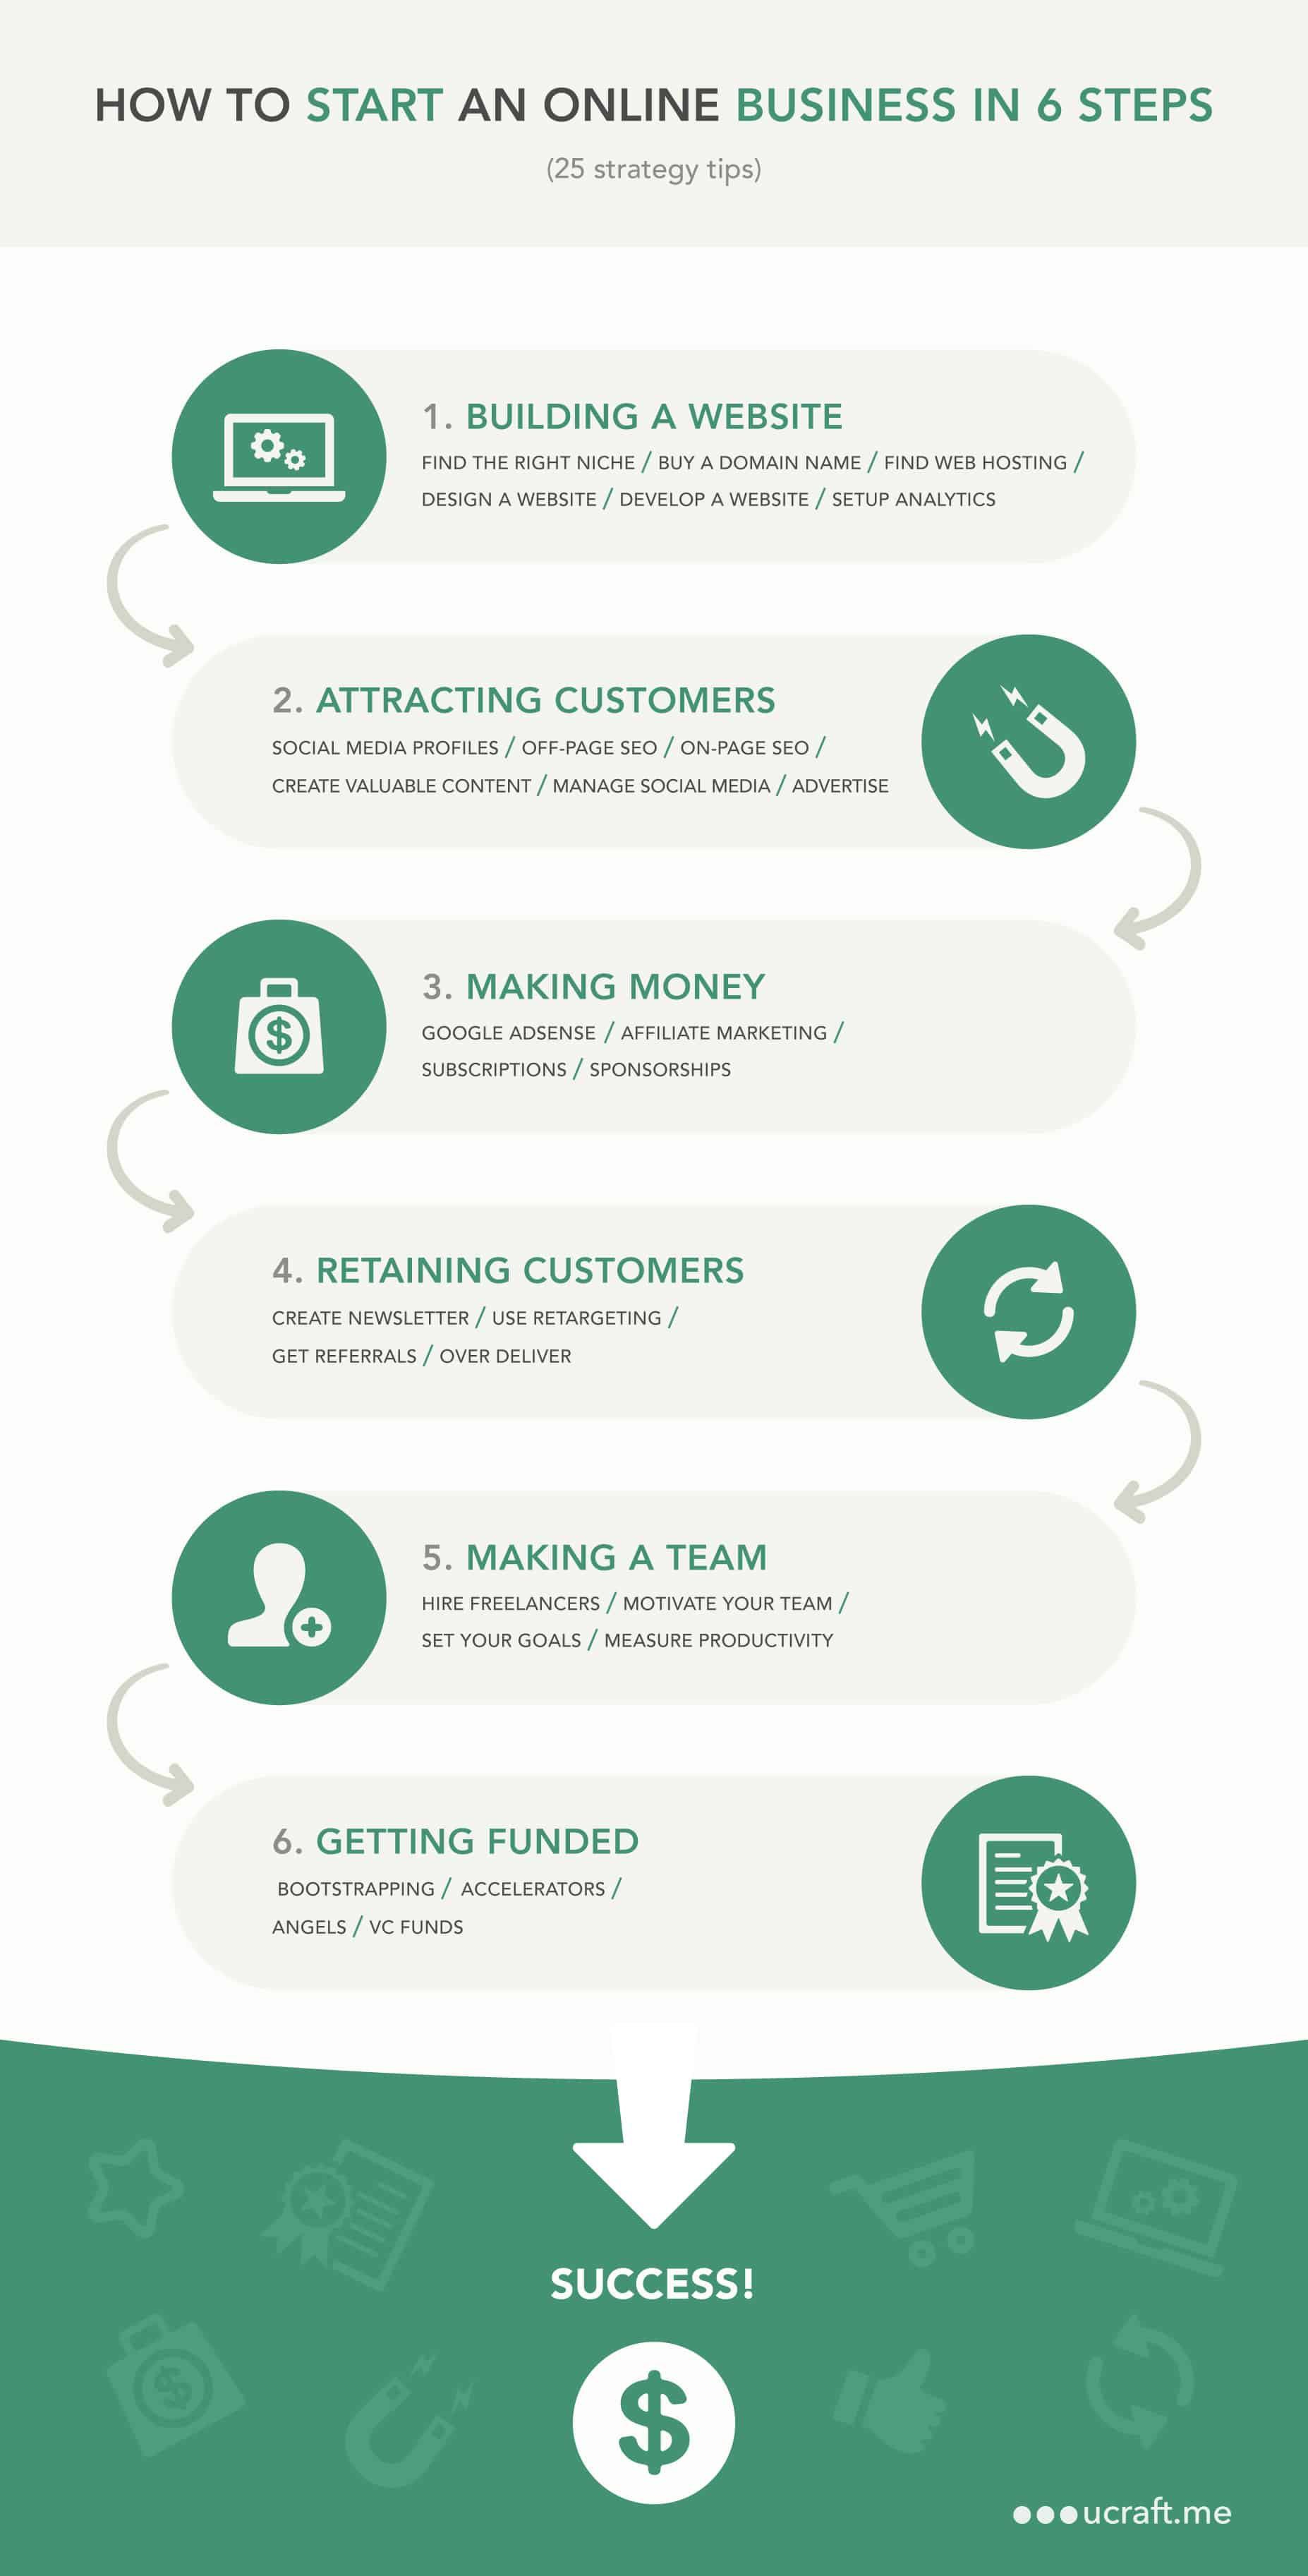 How to Start an Online Business in 6 Steps - infographic